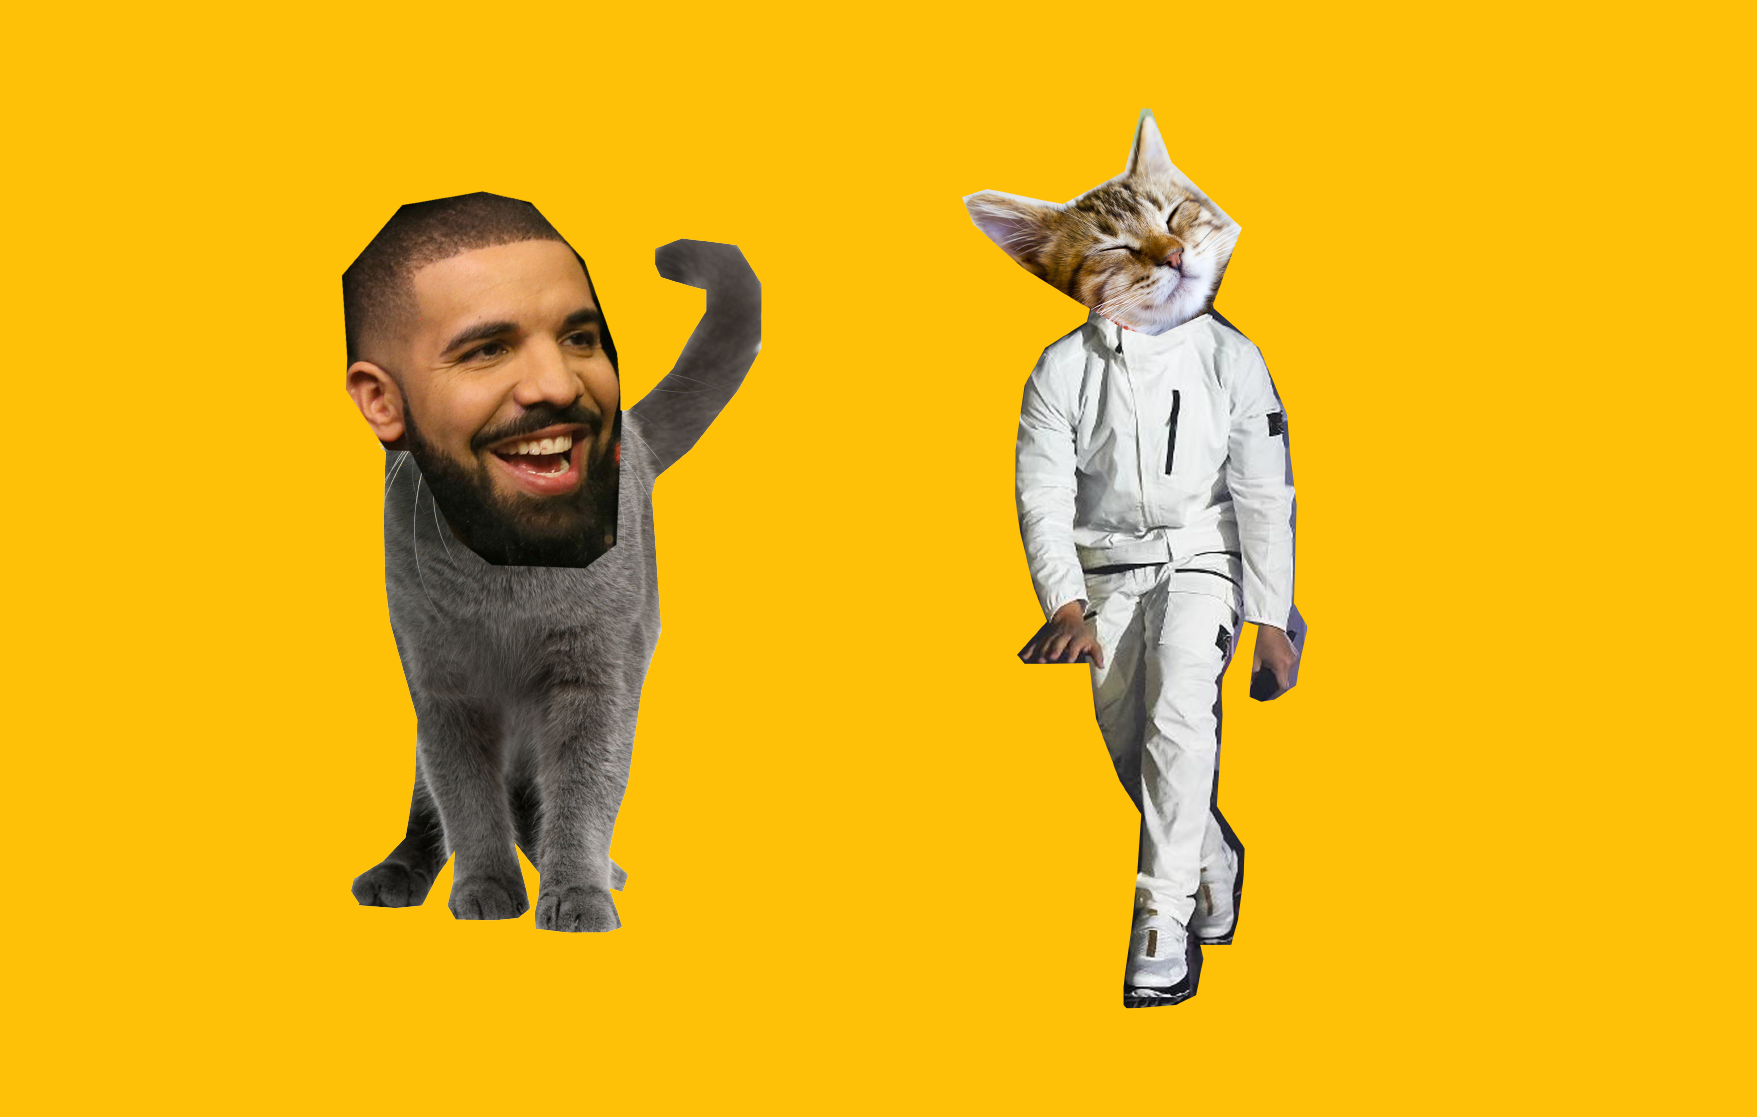 Left: Professional rapper Aubrey Drake Graham's head superimposed onto a gray cat's body. Right: A cat's head superimposed onto professional rapper Aubrey Drake Graham's body.